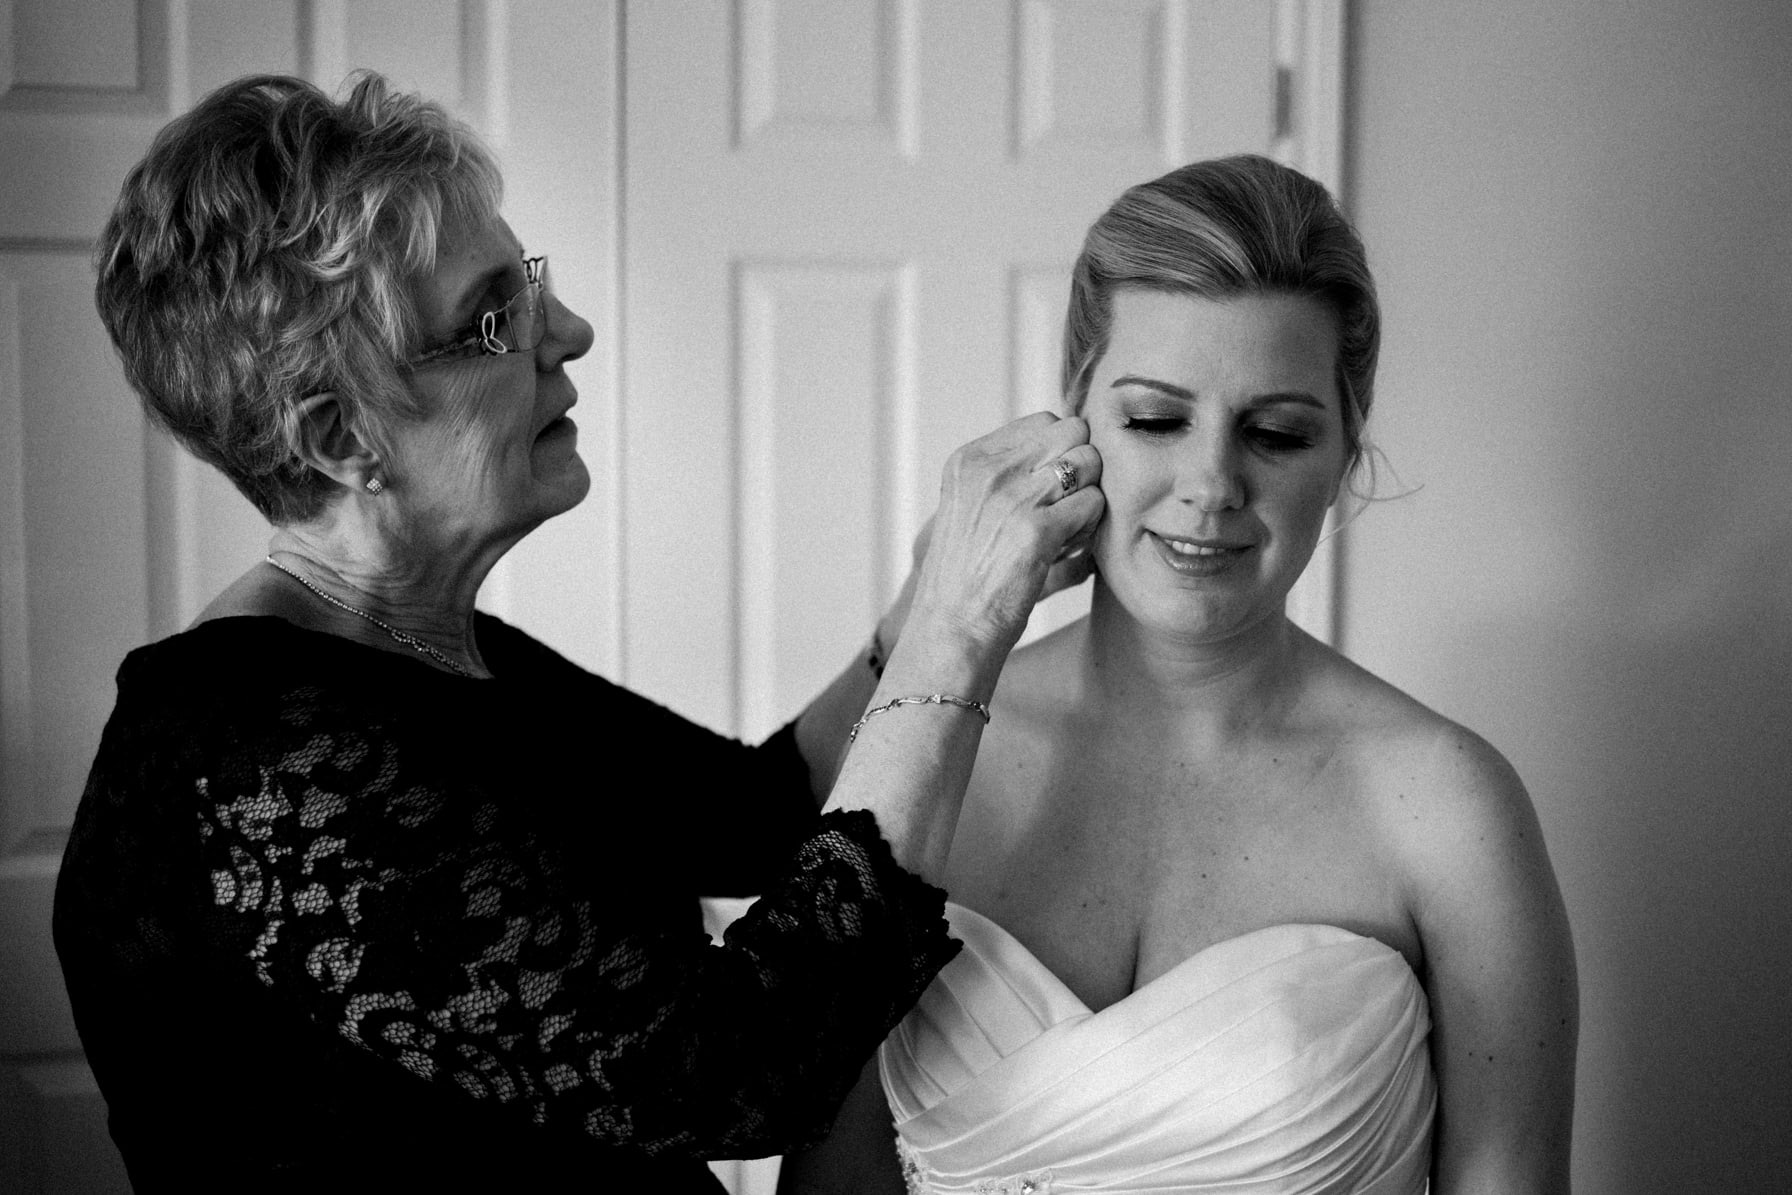 Lago Bar and Grill Wedding - Bride's stepmom helps with earring